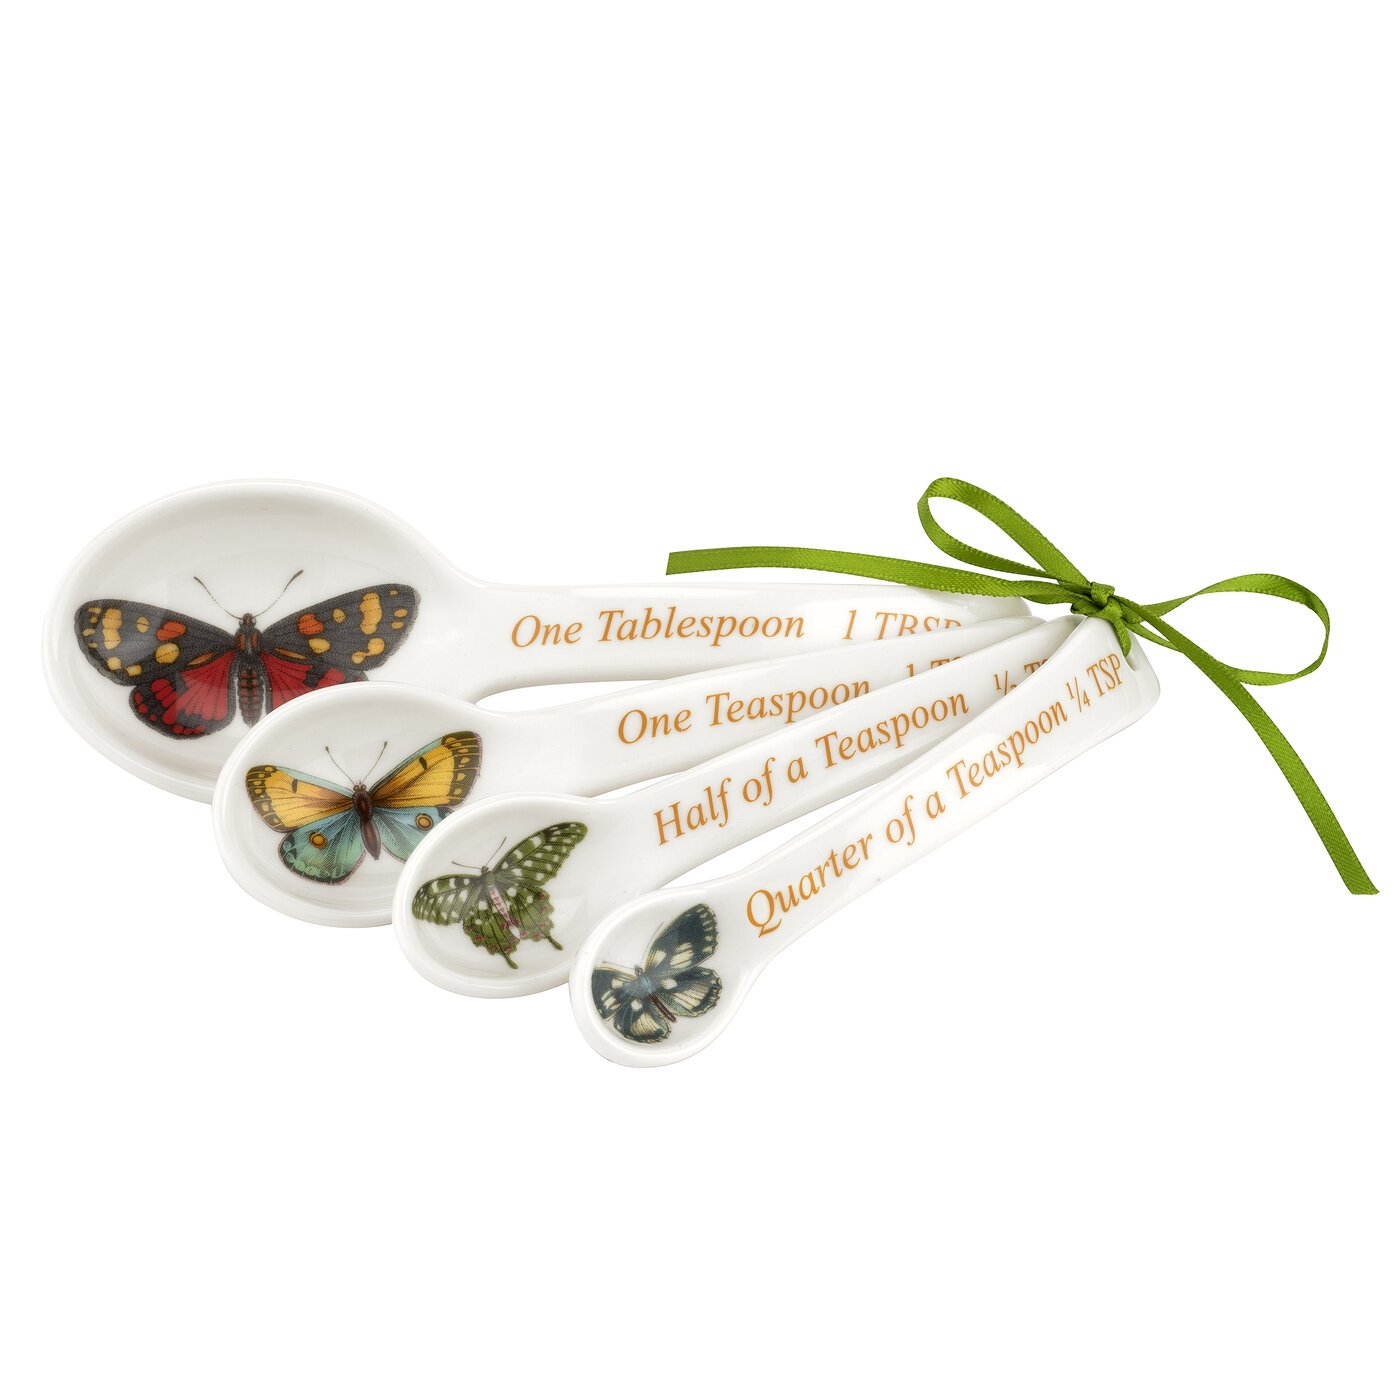 Portmeirion Botanic Garden Harmony Set of 4 Measuring Spoons image number 0